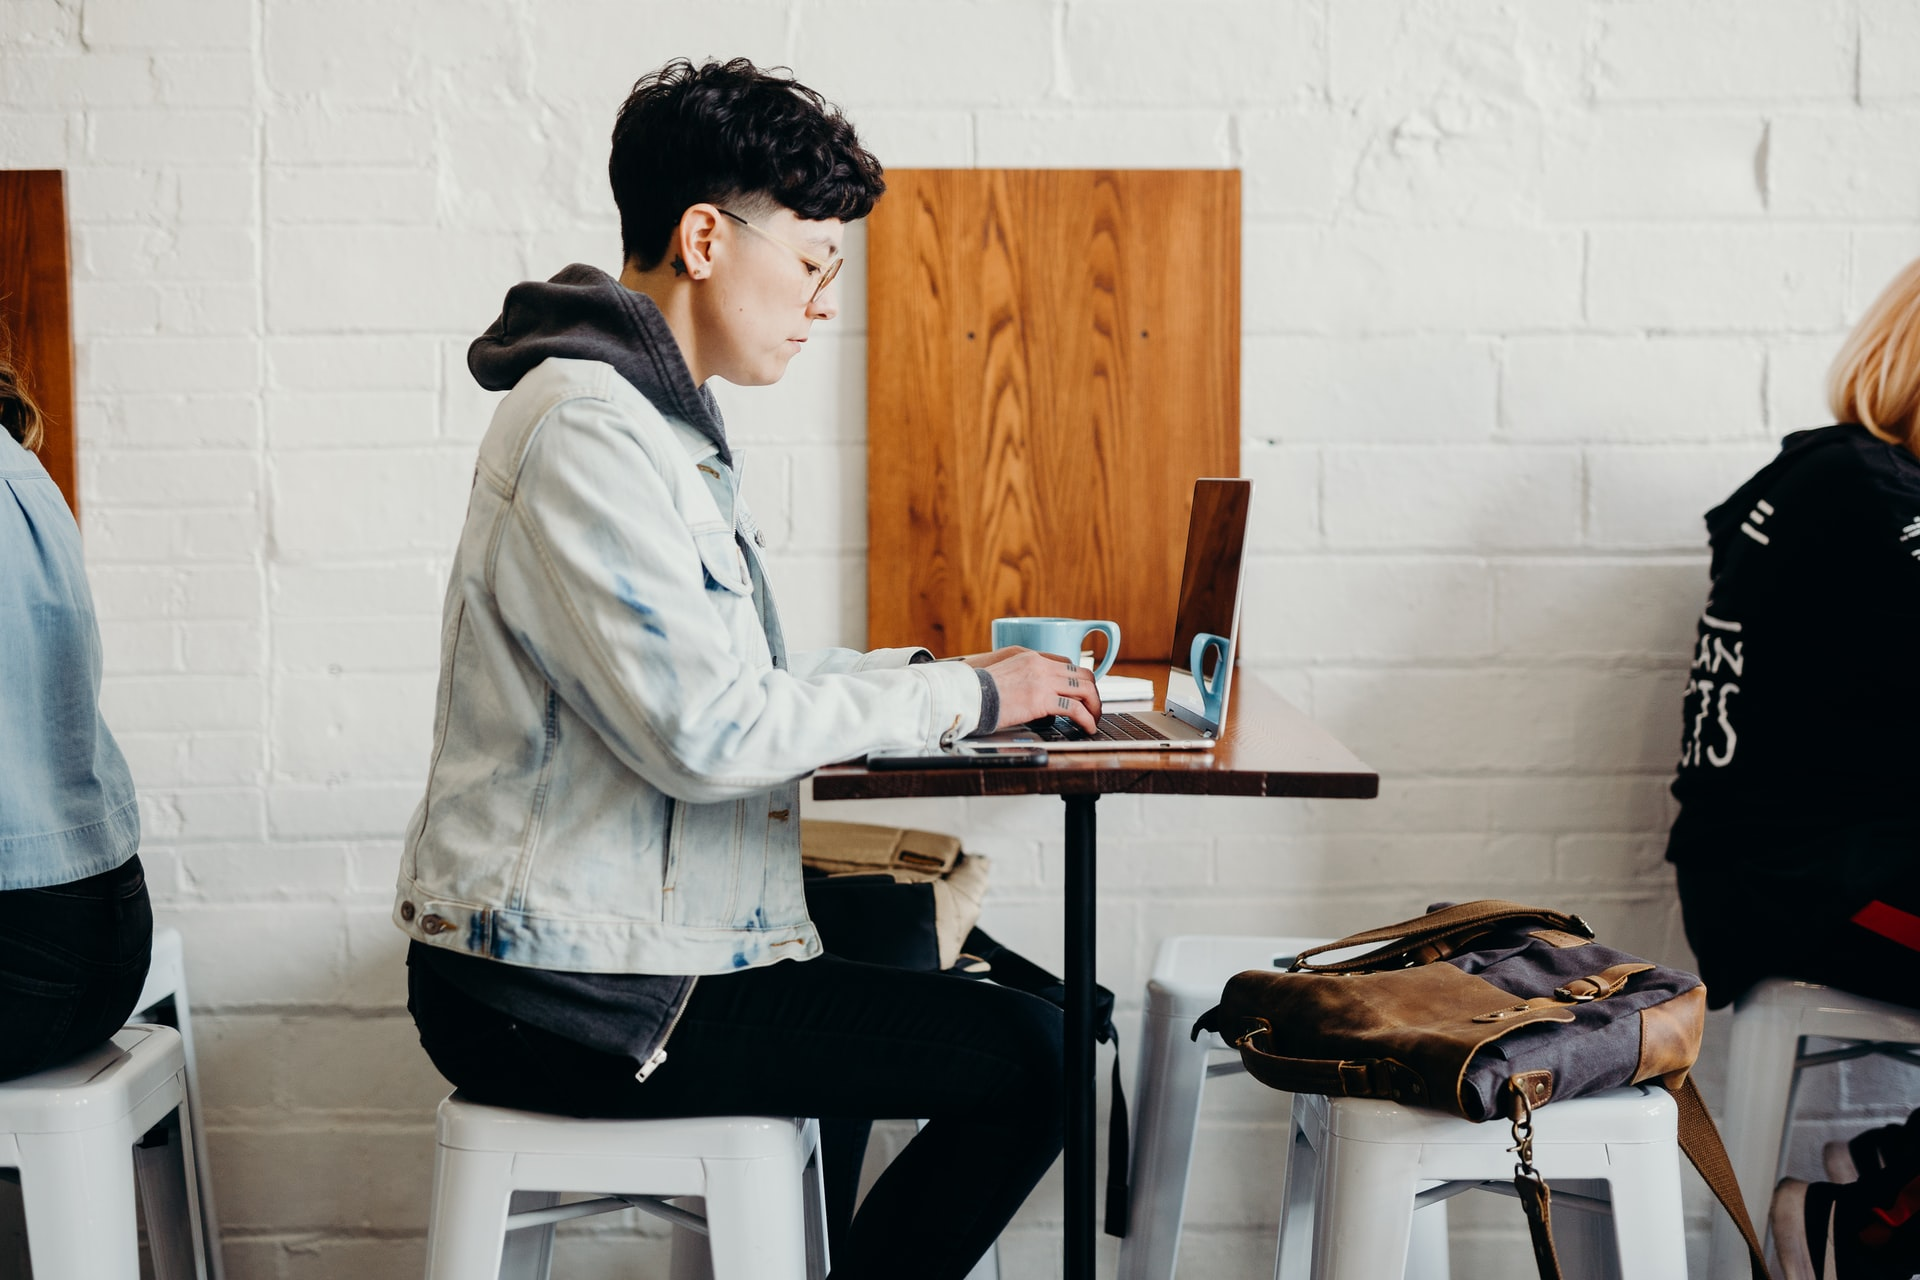 A medical student working in a cafe